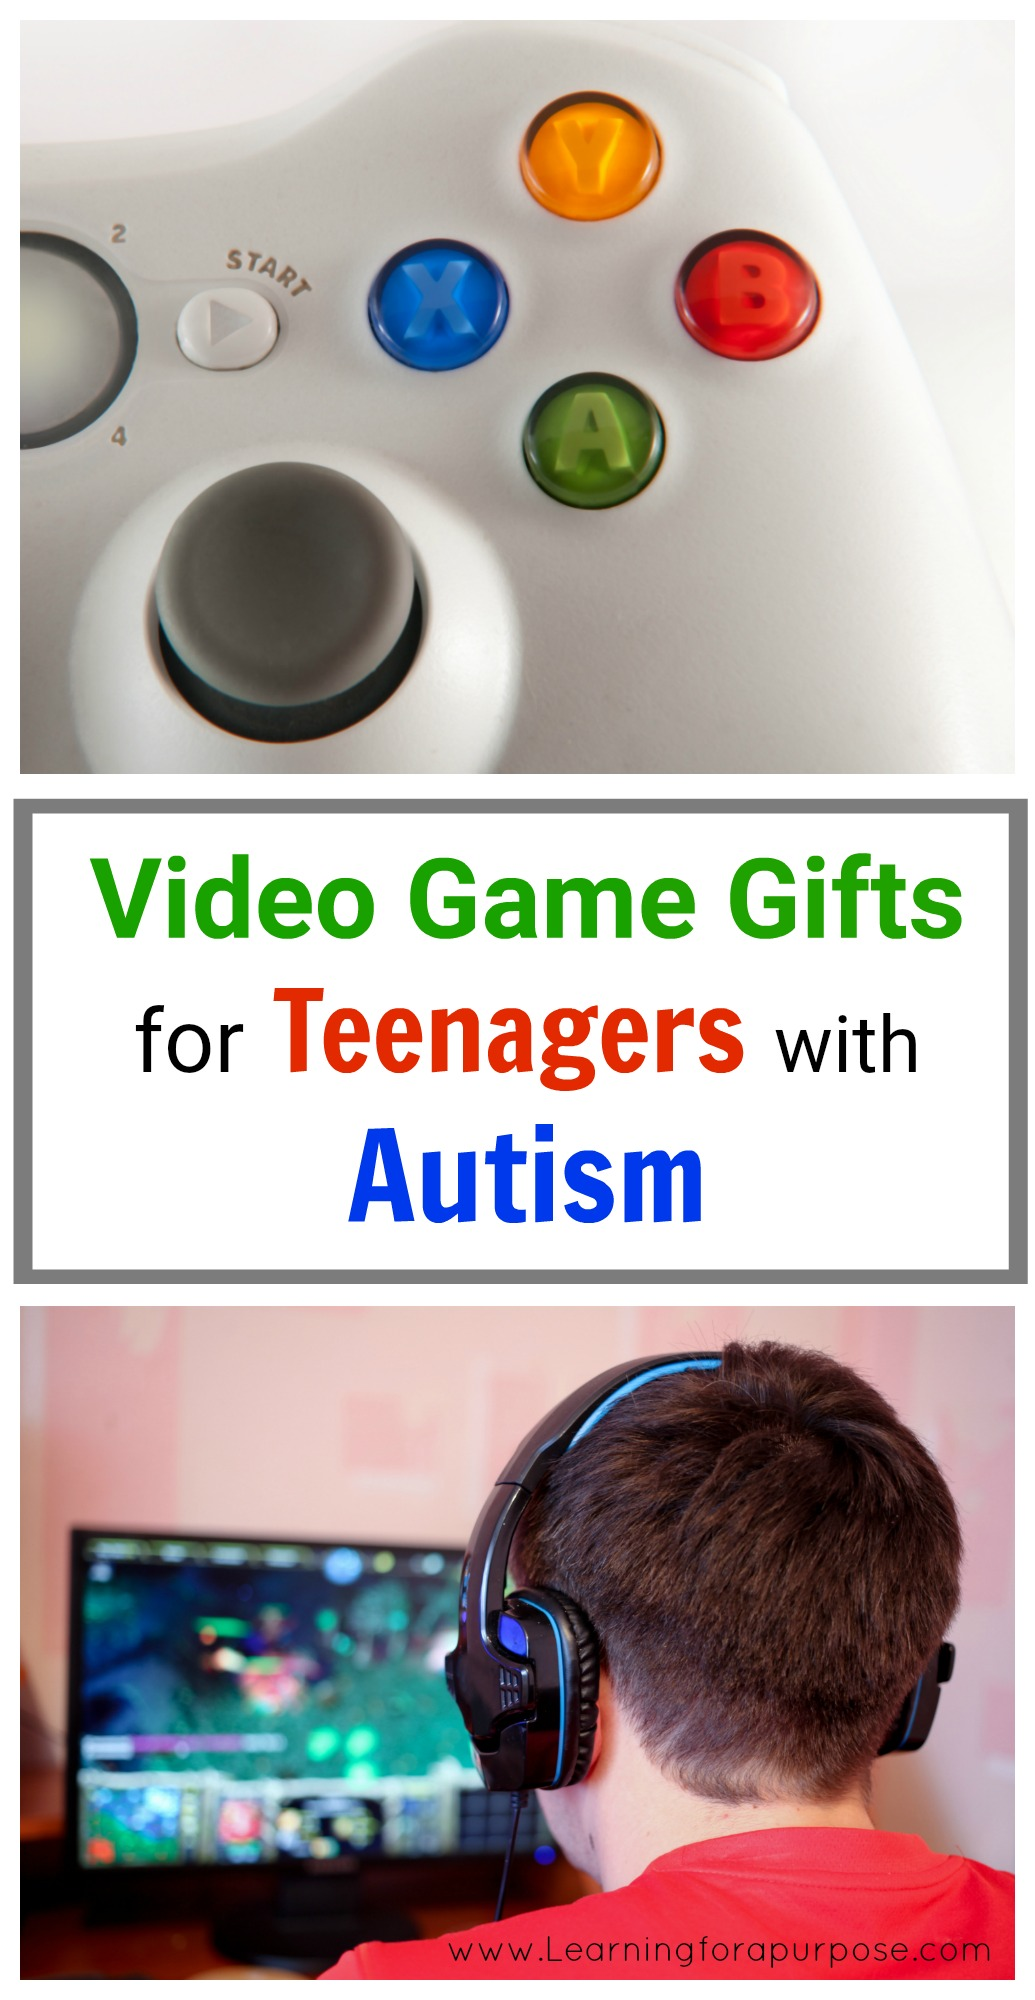 Video Game Gifts for Teenagers with Autism Learning For A Purpose